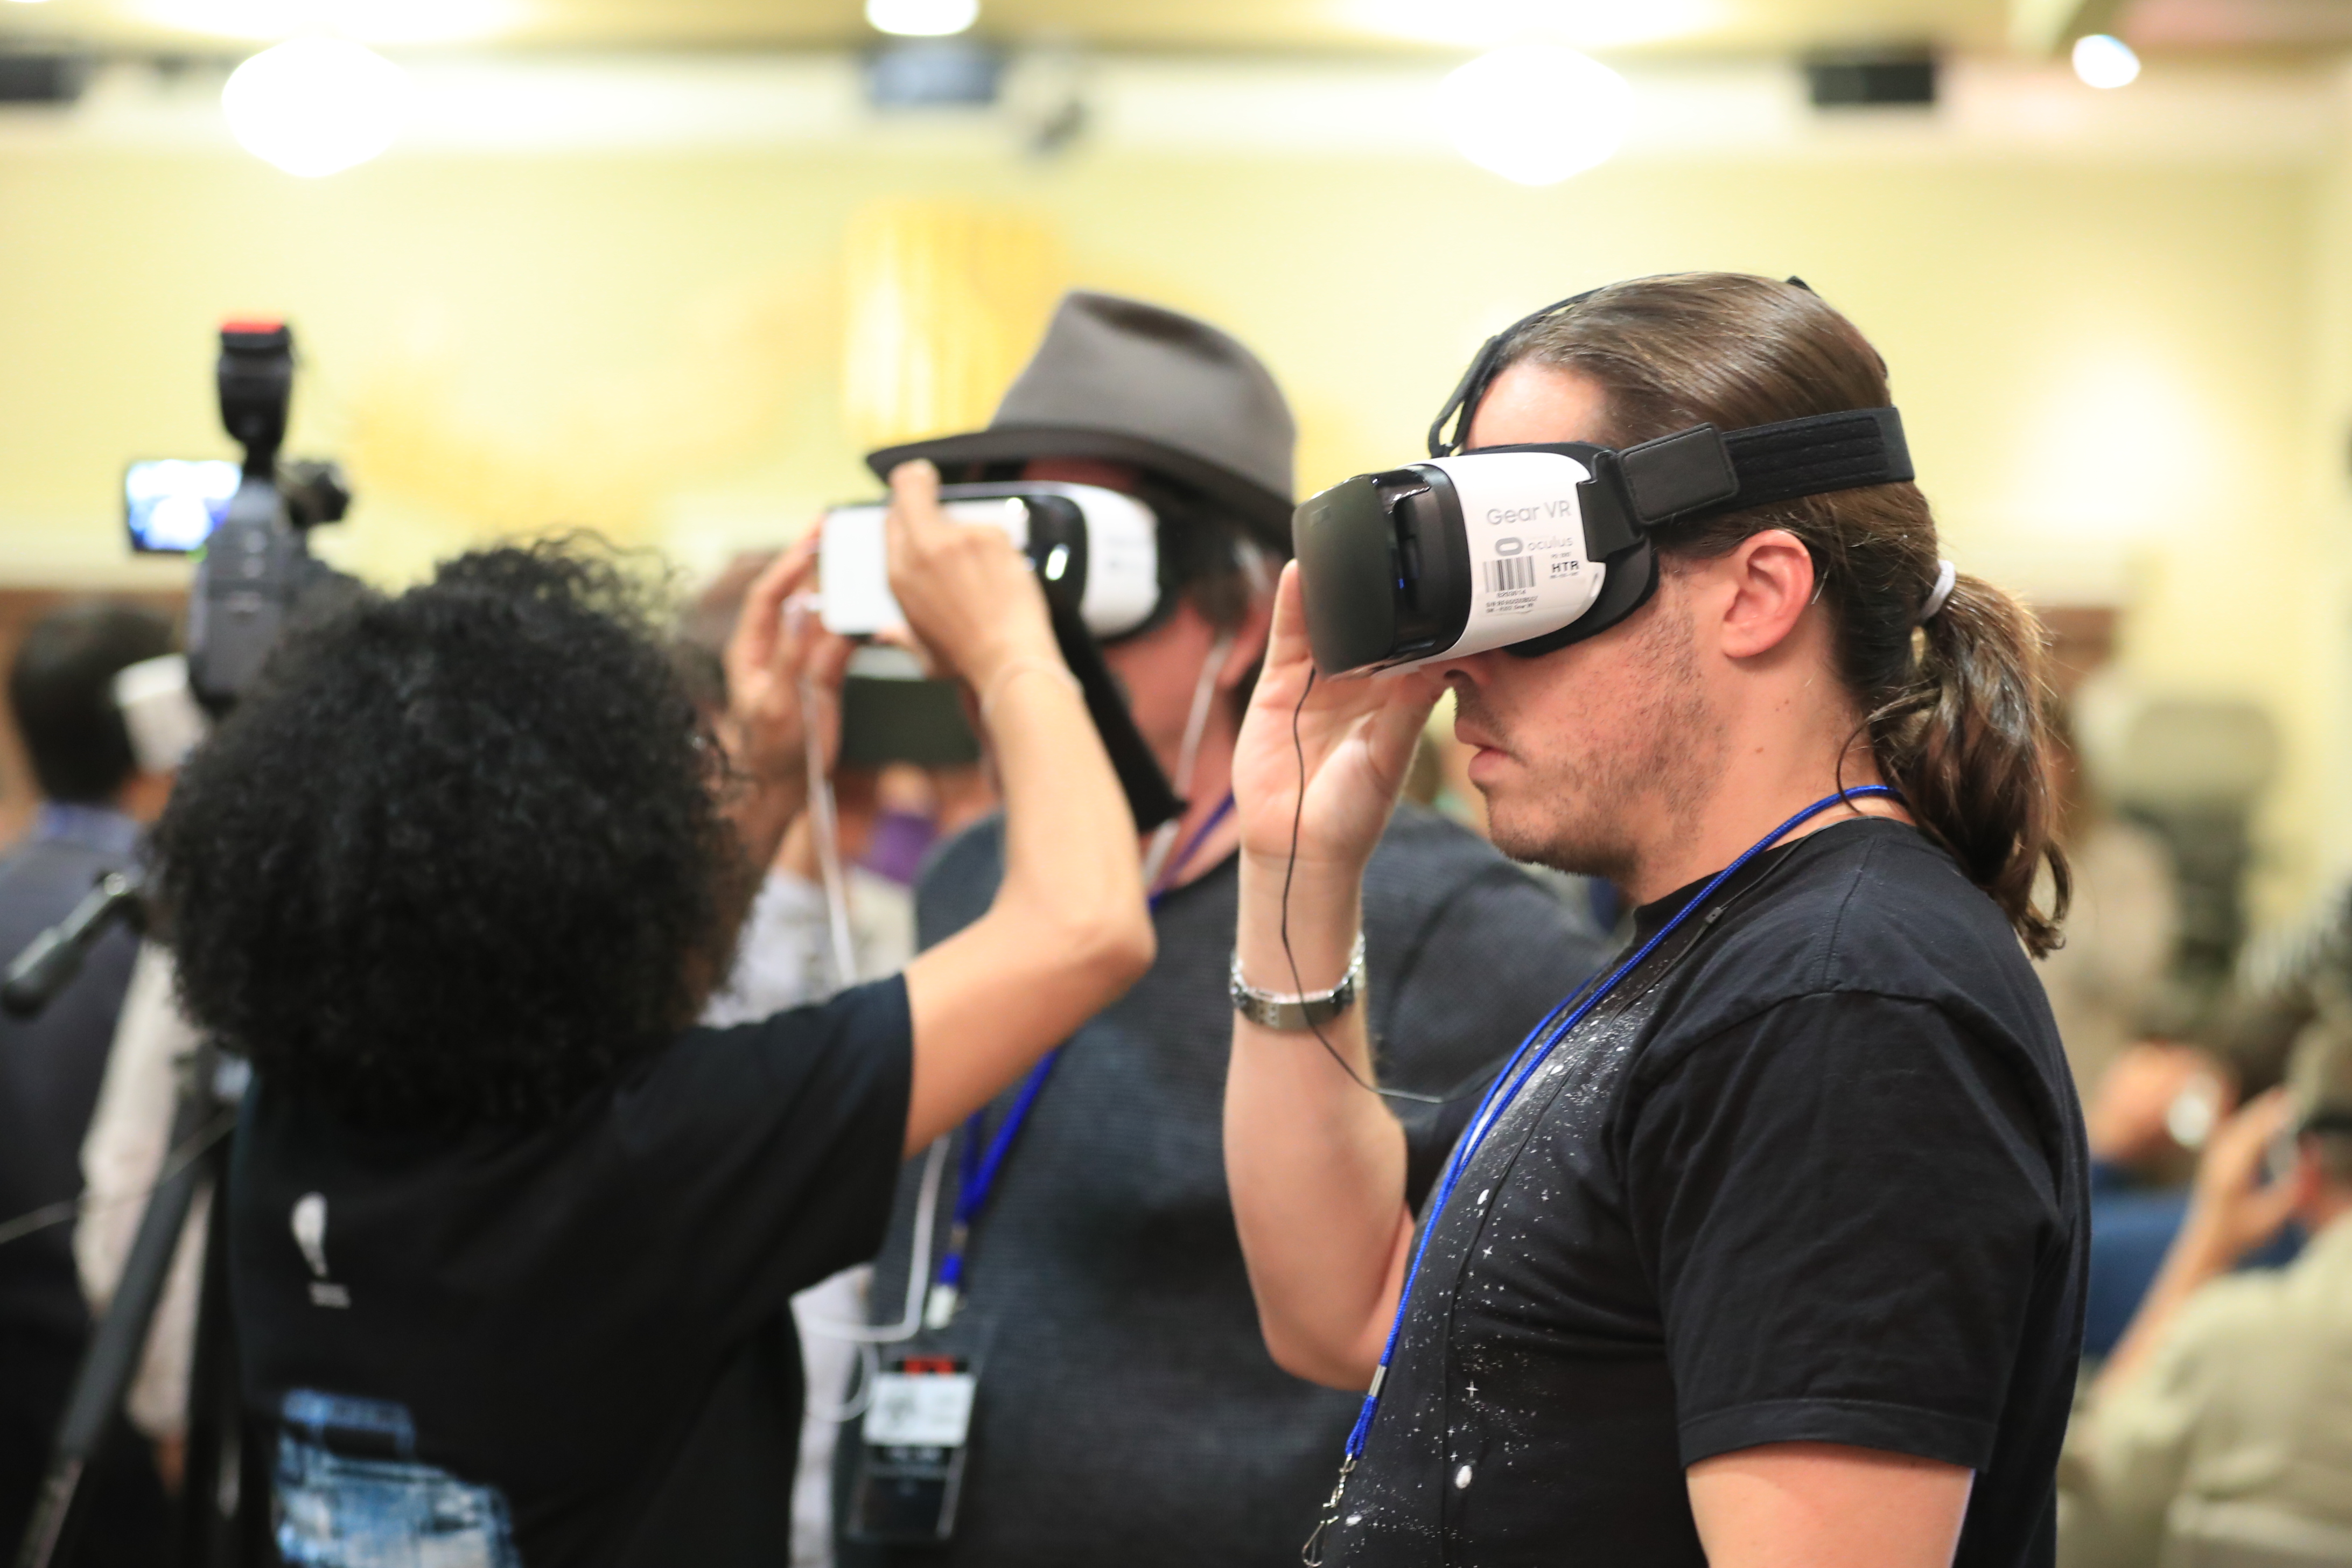 ICE participants experienced portions of the VR demo using Oculus Gear VR headsets. Photo by James Neihouse, ASC